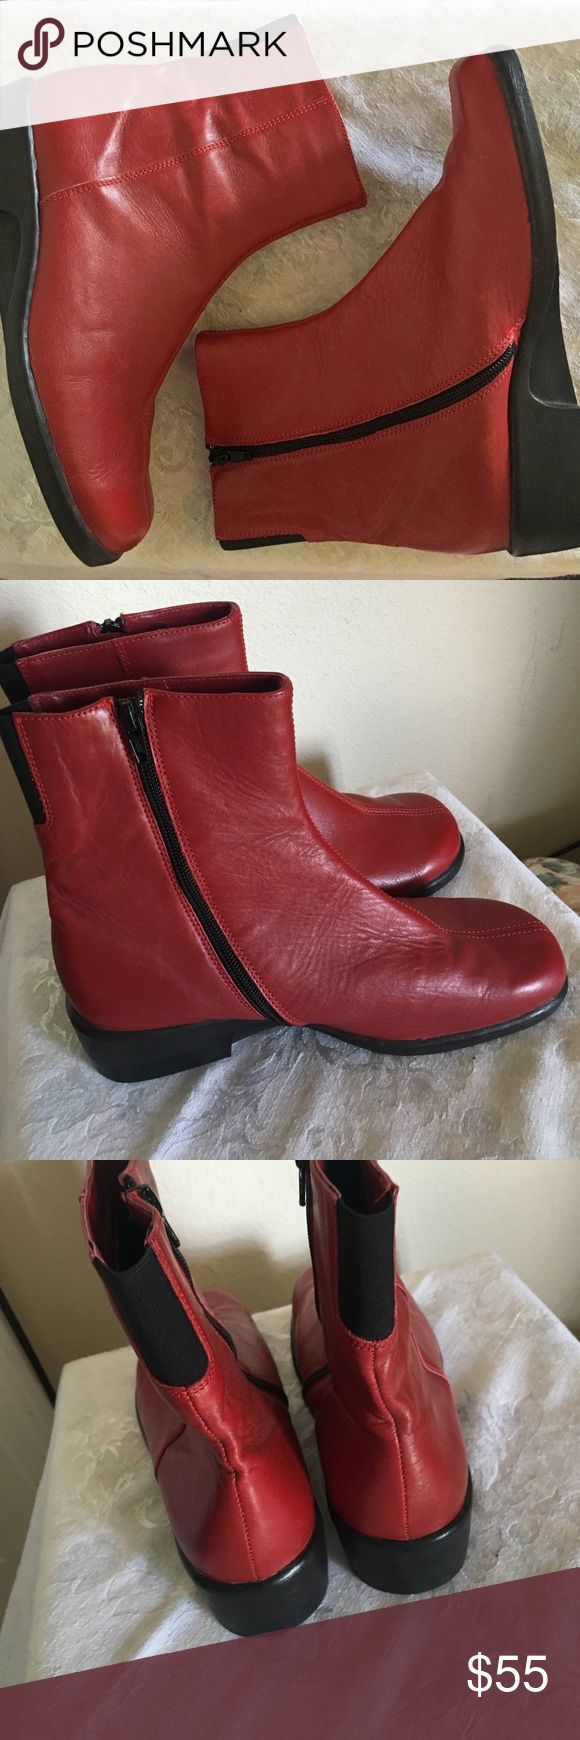 """🆕 Red & black Arcopedico boots, like new, size 40 Arcopedico (""""The Most Comfortable Shoe on Earth"""") by Elio Parodi zipper boots in Cherry (red). Size 40 or 10 US. Made in Portugal. High-quality, very comfortable boots with butter-soft real leather. These shoes are in like new condition but no tags or box. Never worn outside. Arcopedico Shoes Ankle Boots & Booties"""